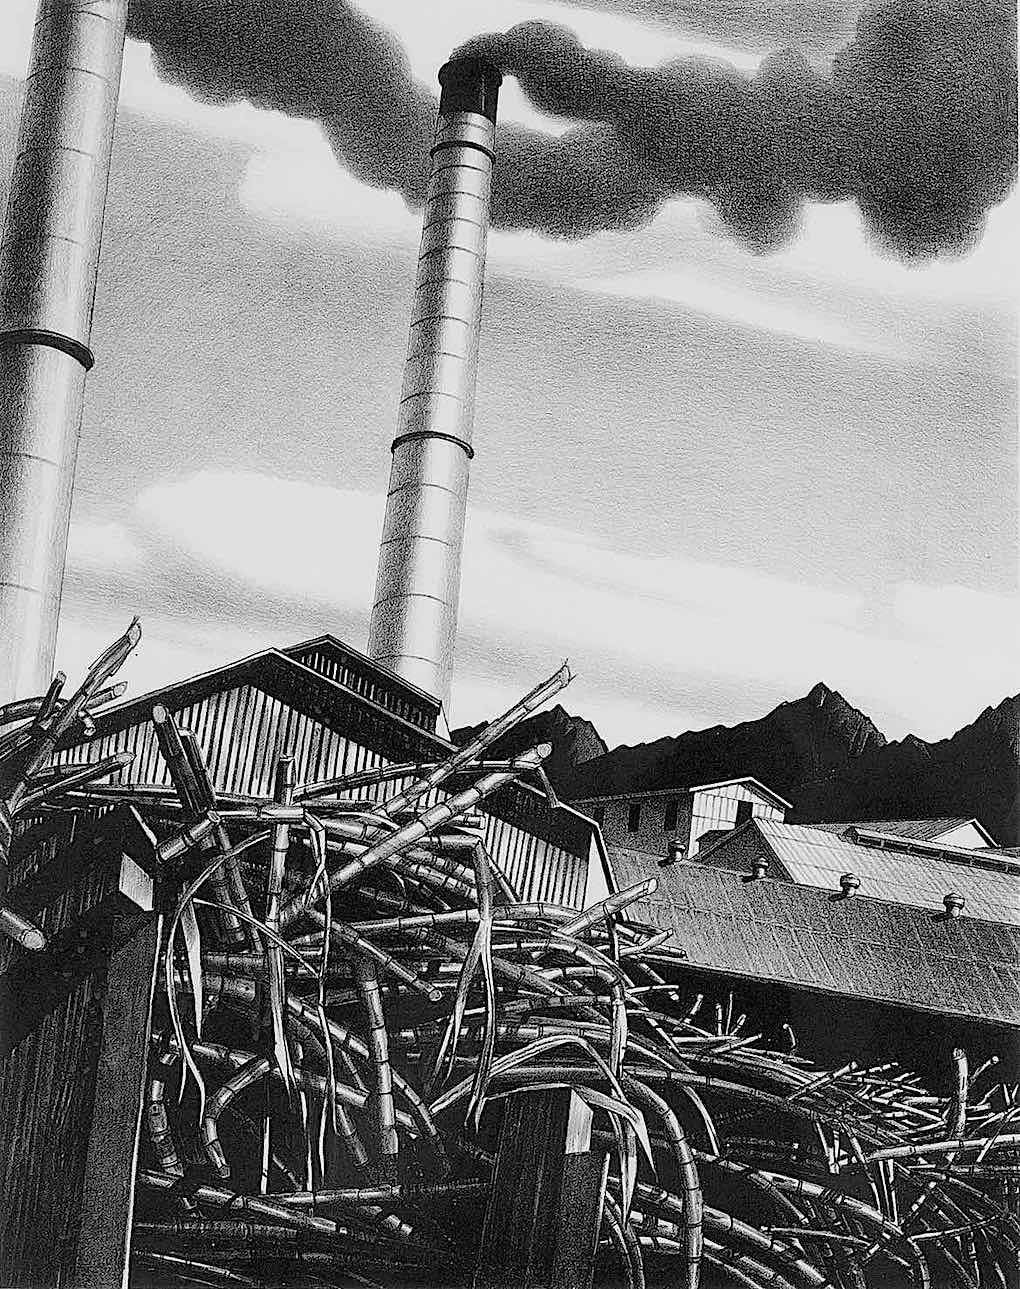 Stow Wengenroth, a factory